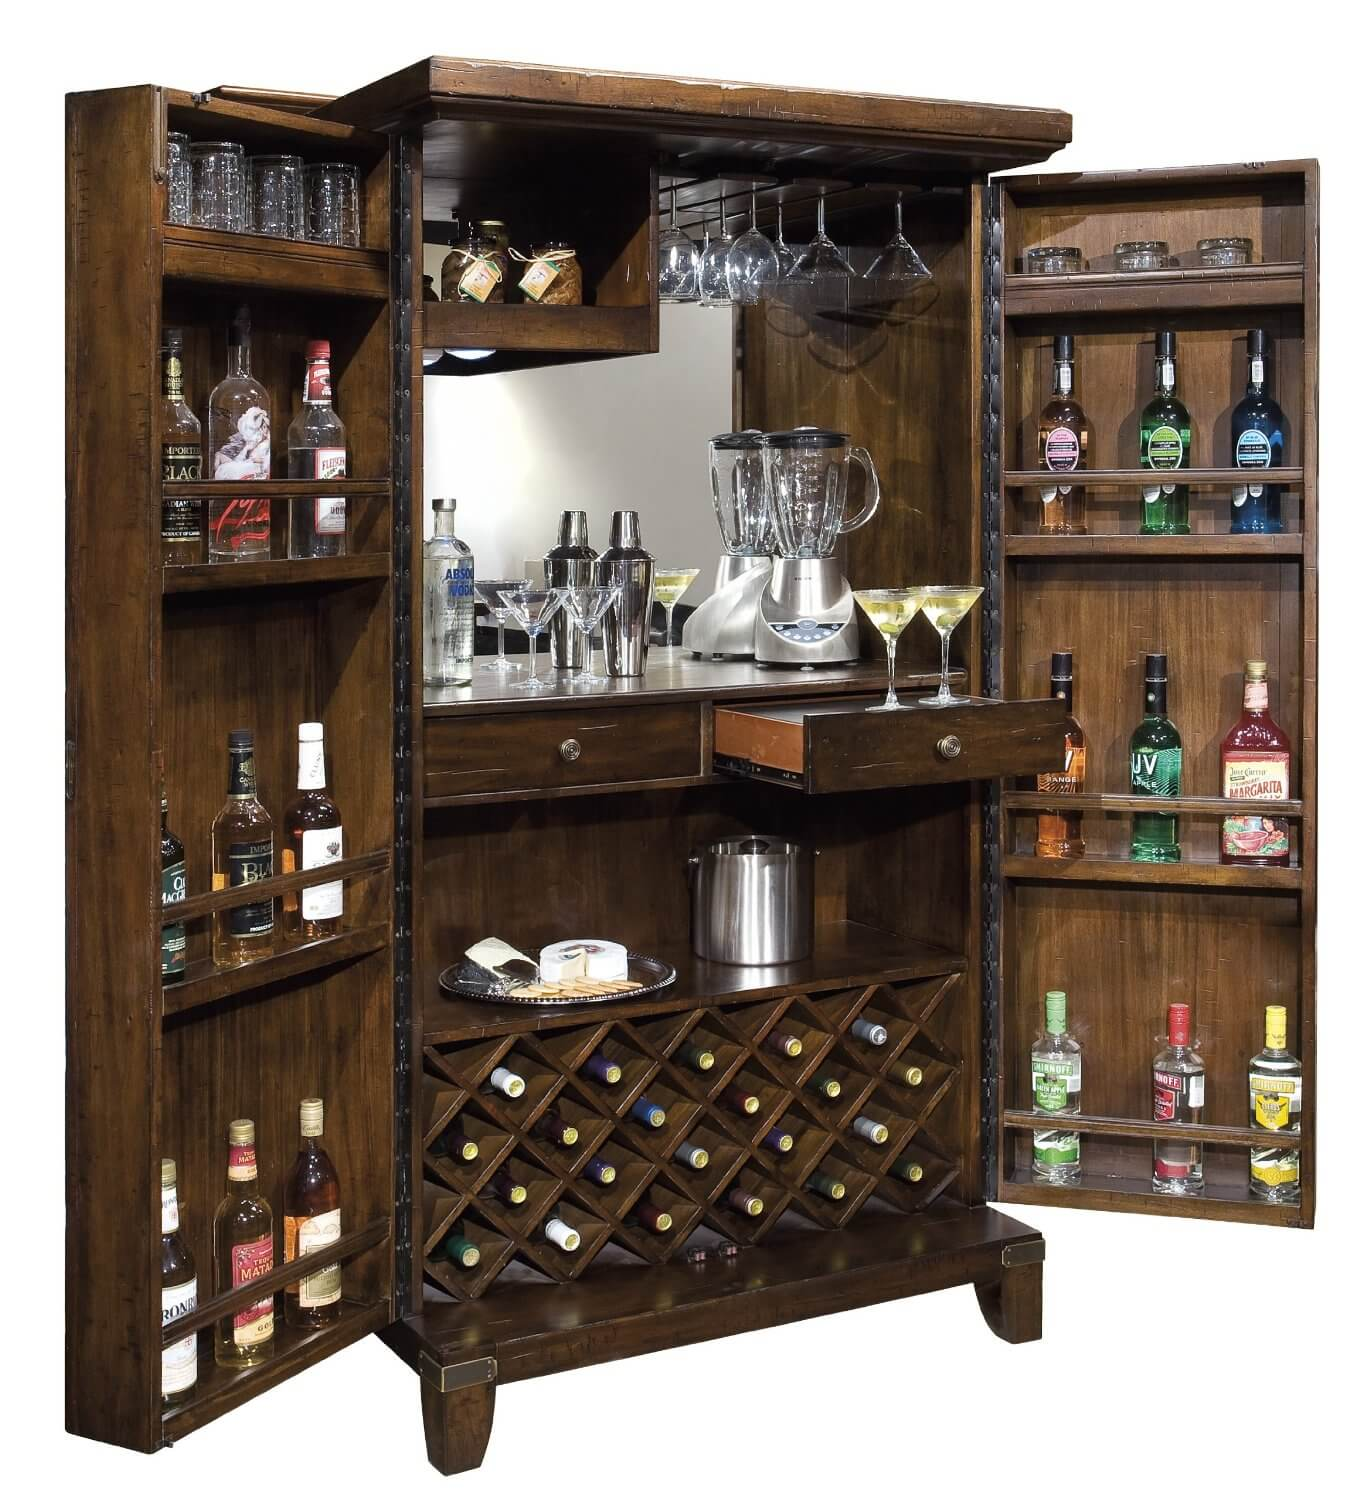 41 custom luxury wine cellar designs Home bar furniture design ideas